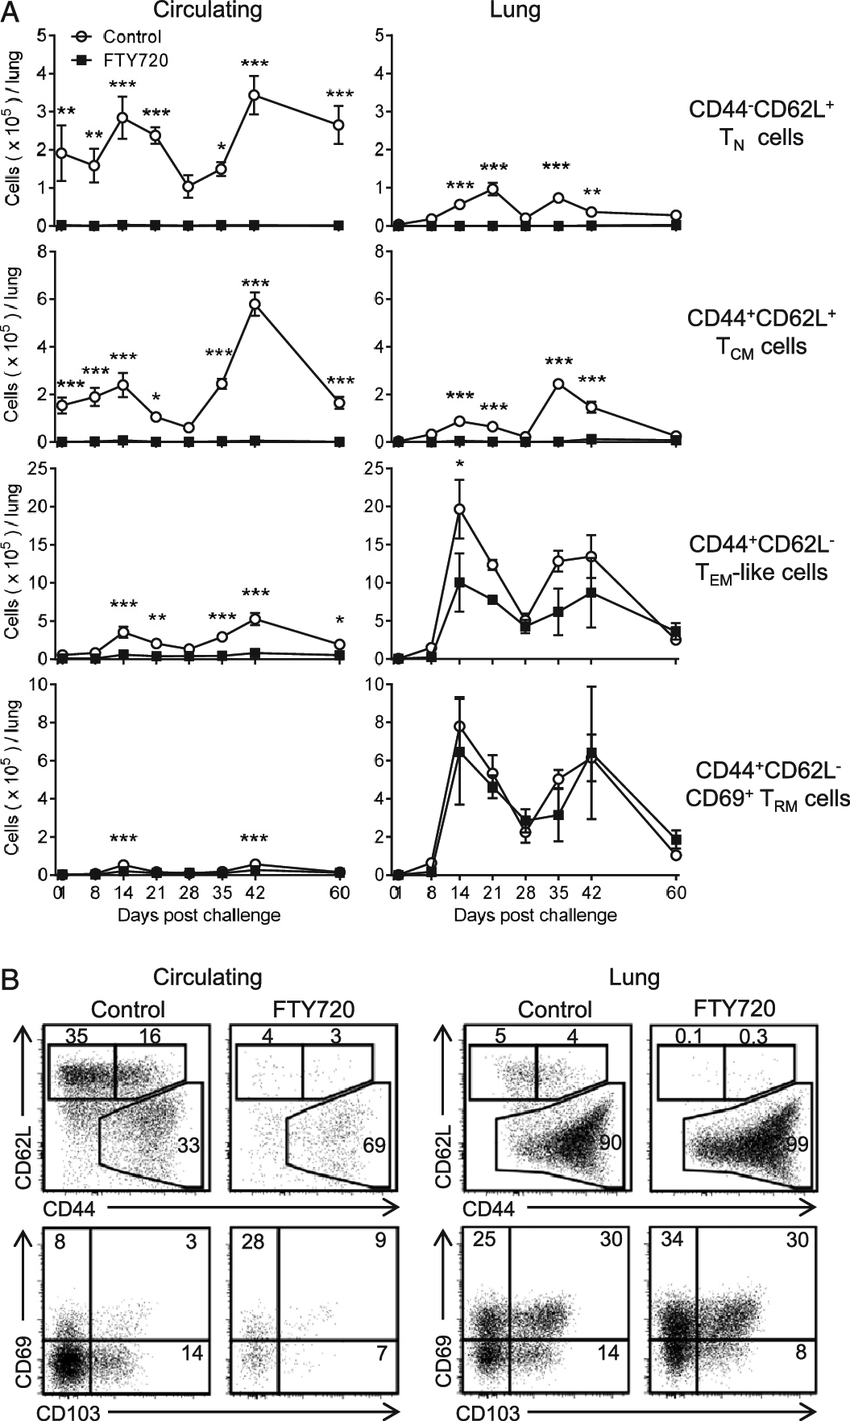 medium resolution of cd4 t cells with a t rmlike phenotype expand in the lung during b download scientific diagram